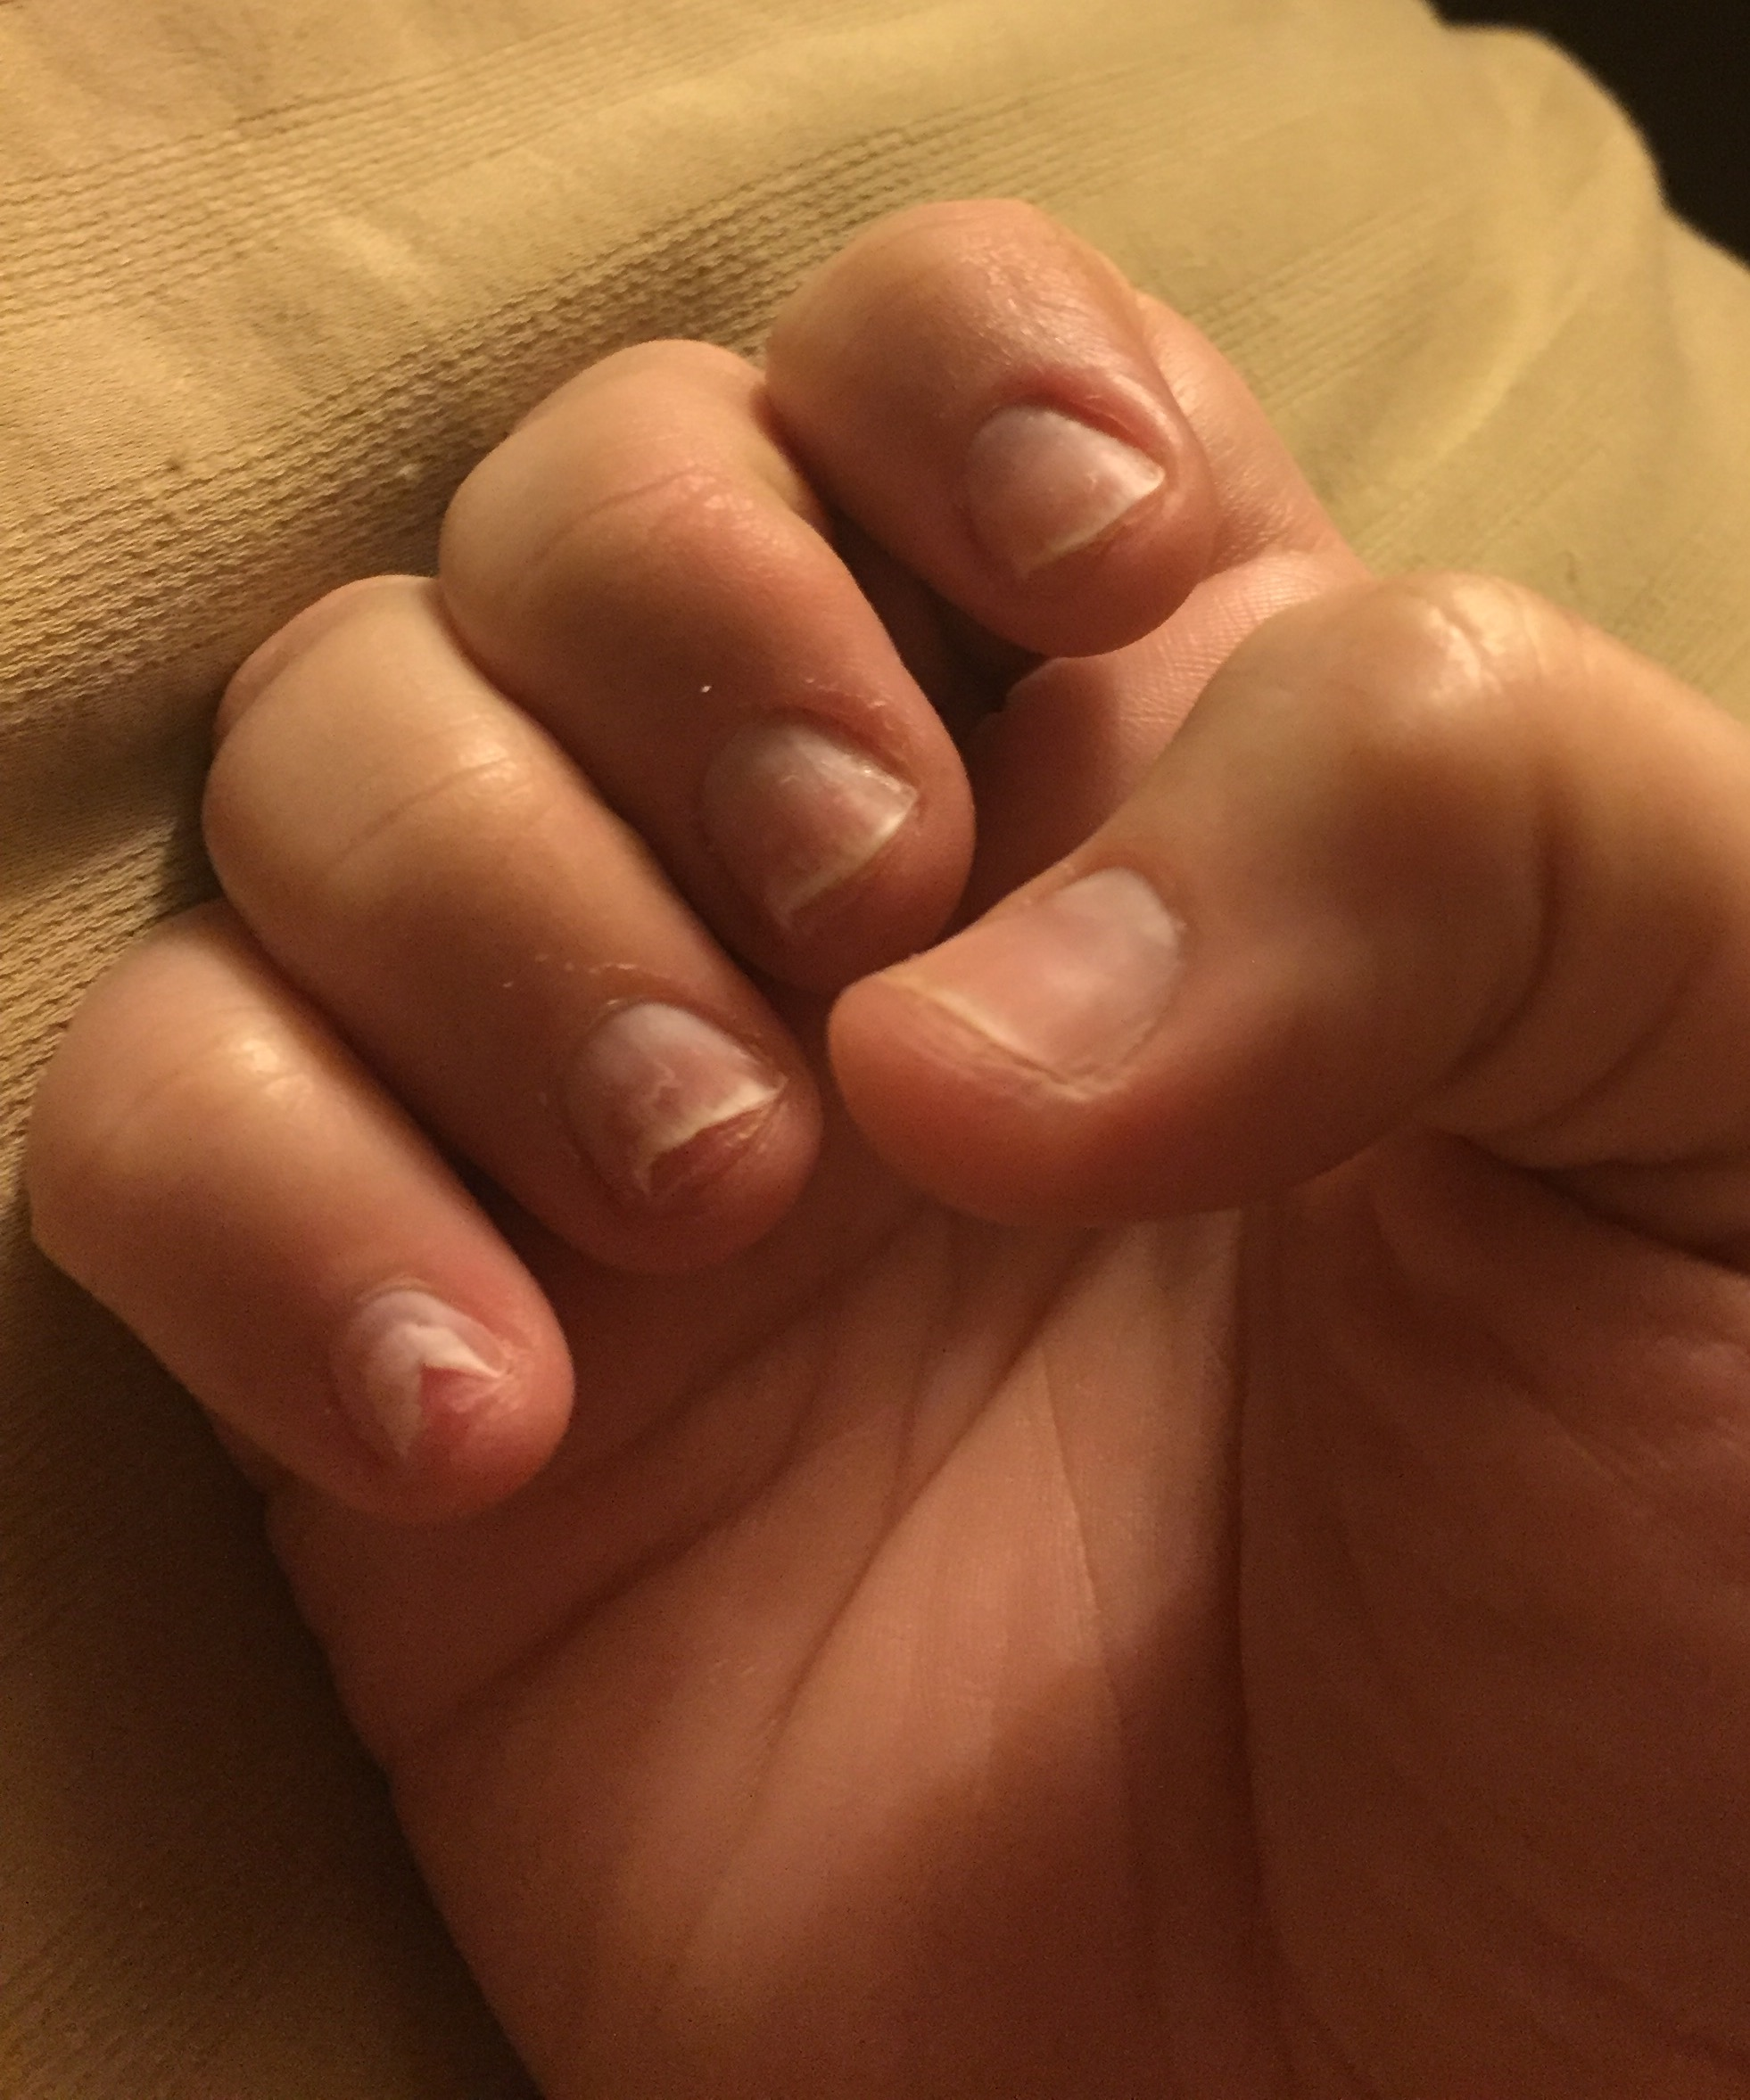 Fingernails lifting - Onycholysis - General Questions - Thinner ...